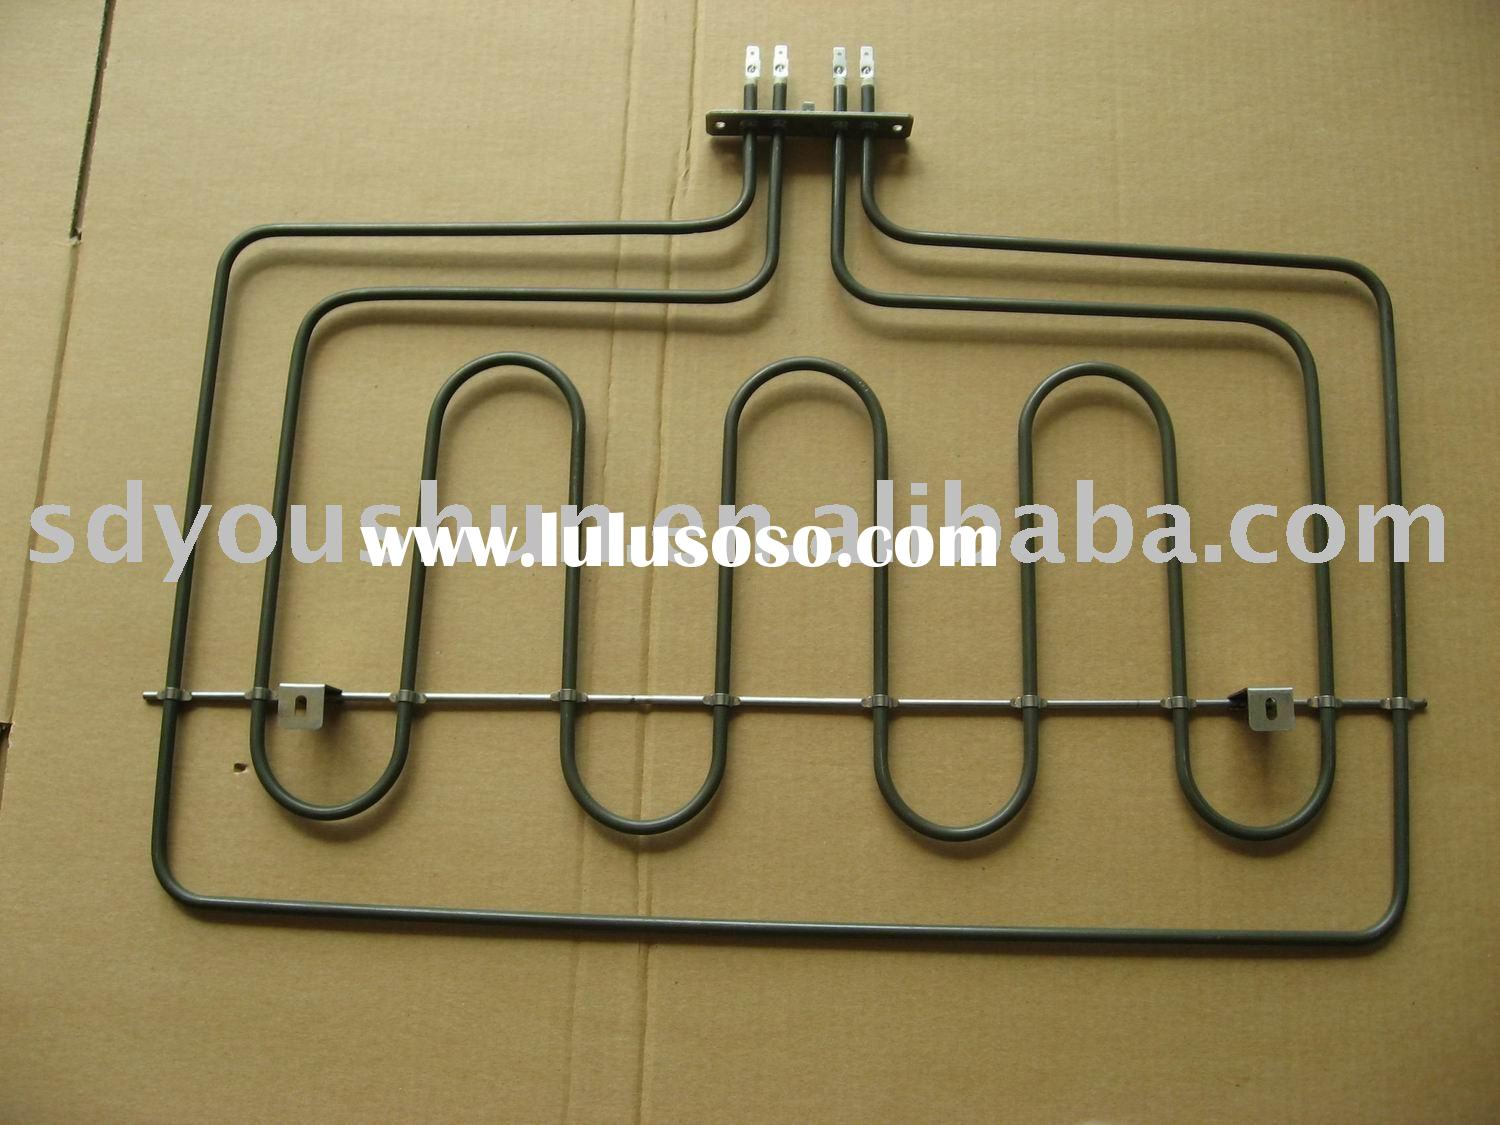 tubular heating element for electric stove